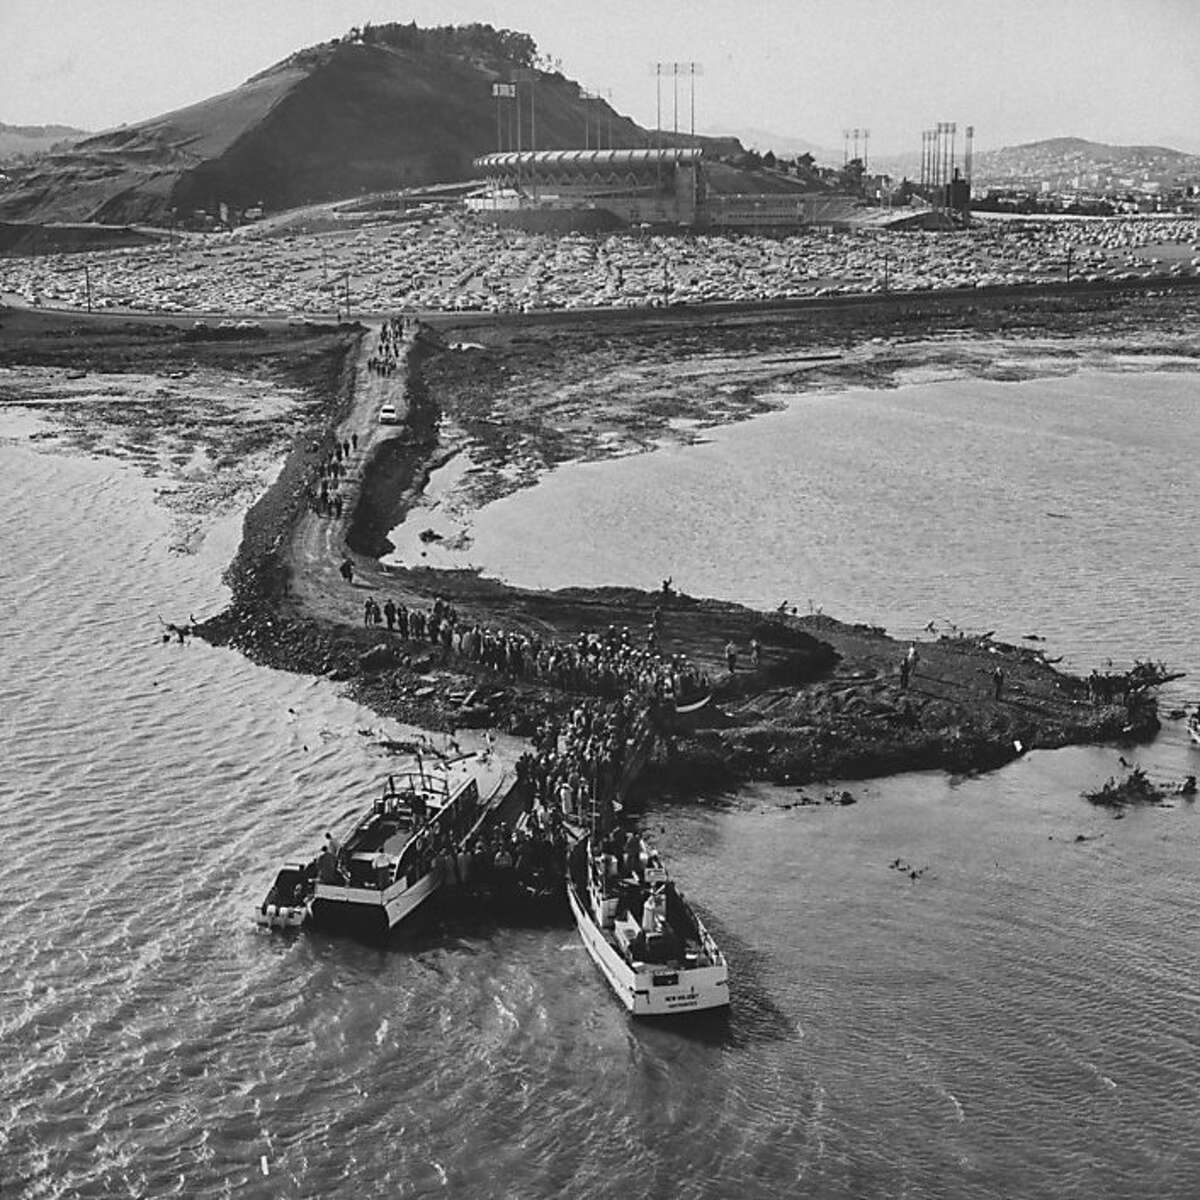 What an incredible sight: Boats bring in fans for the very first game at Candlestick Park (1960).